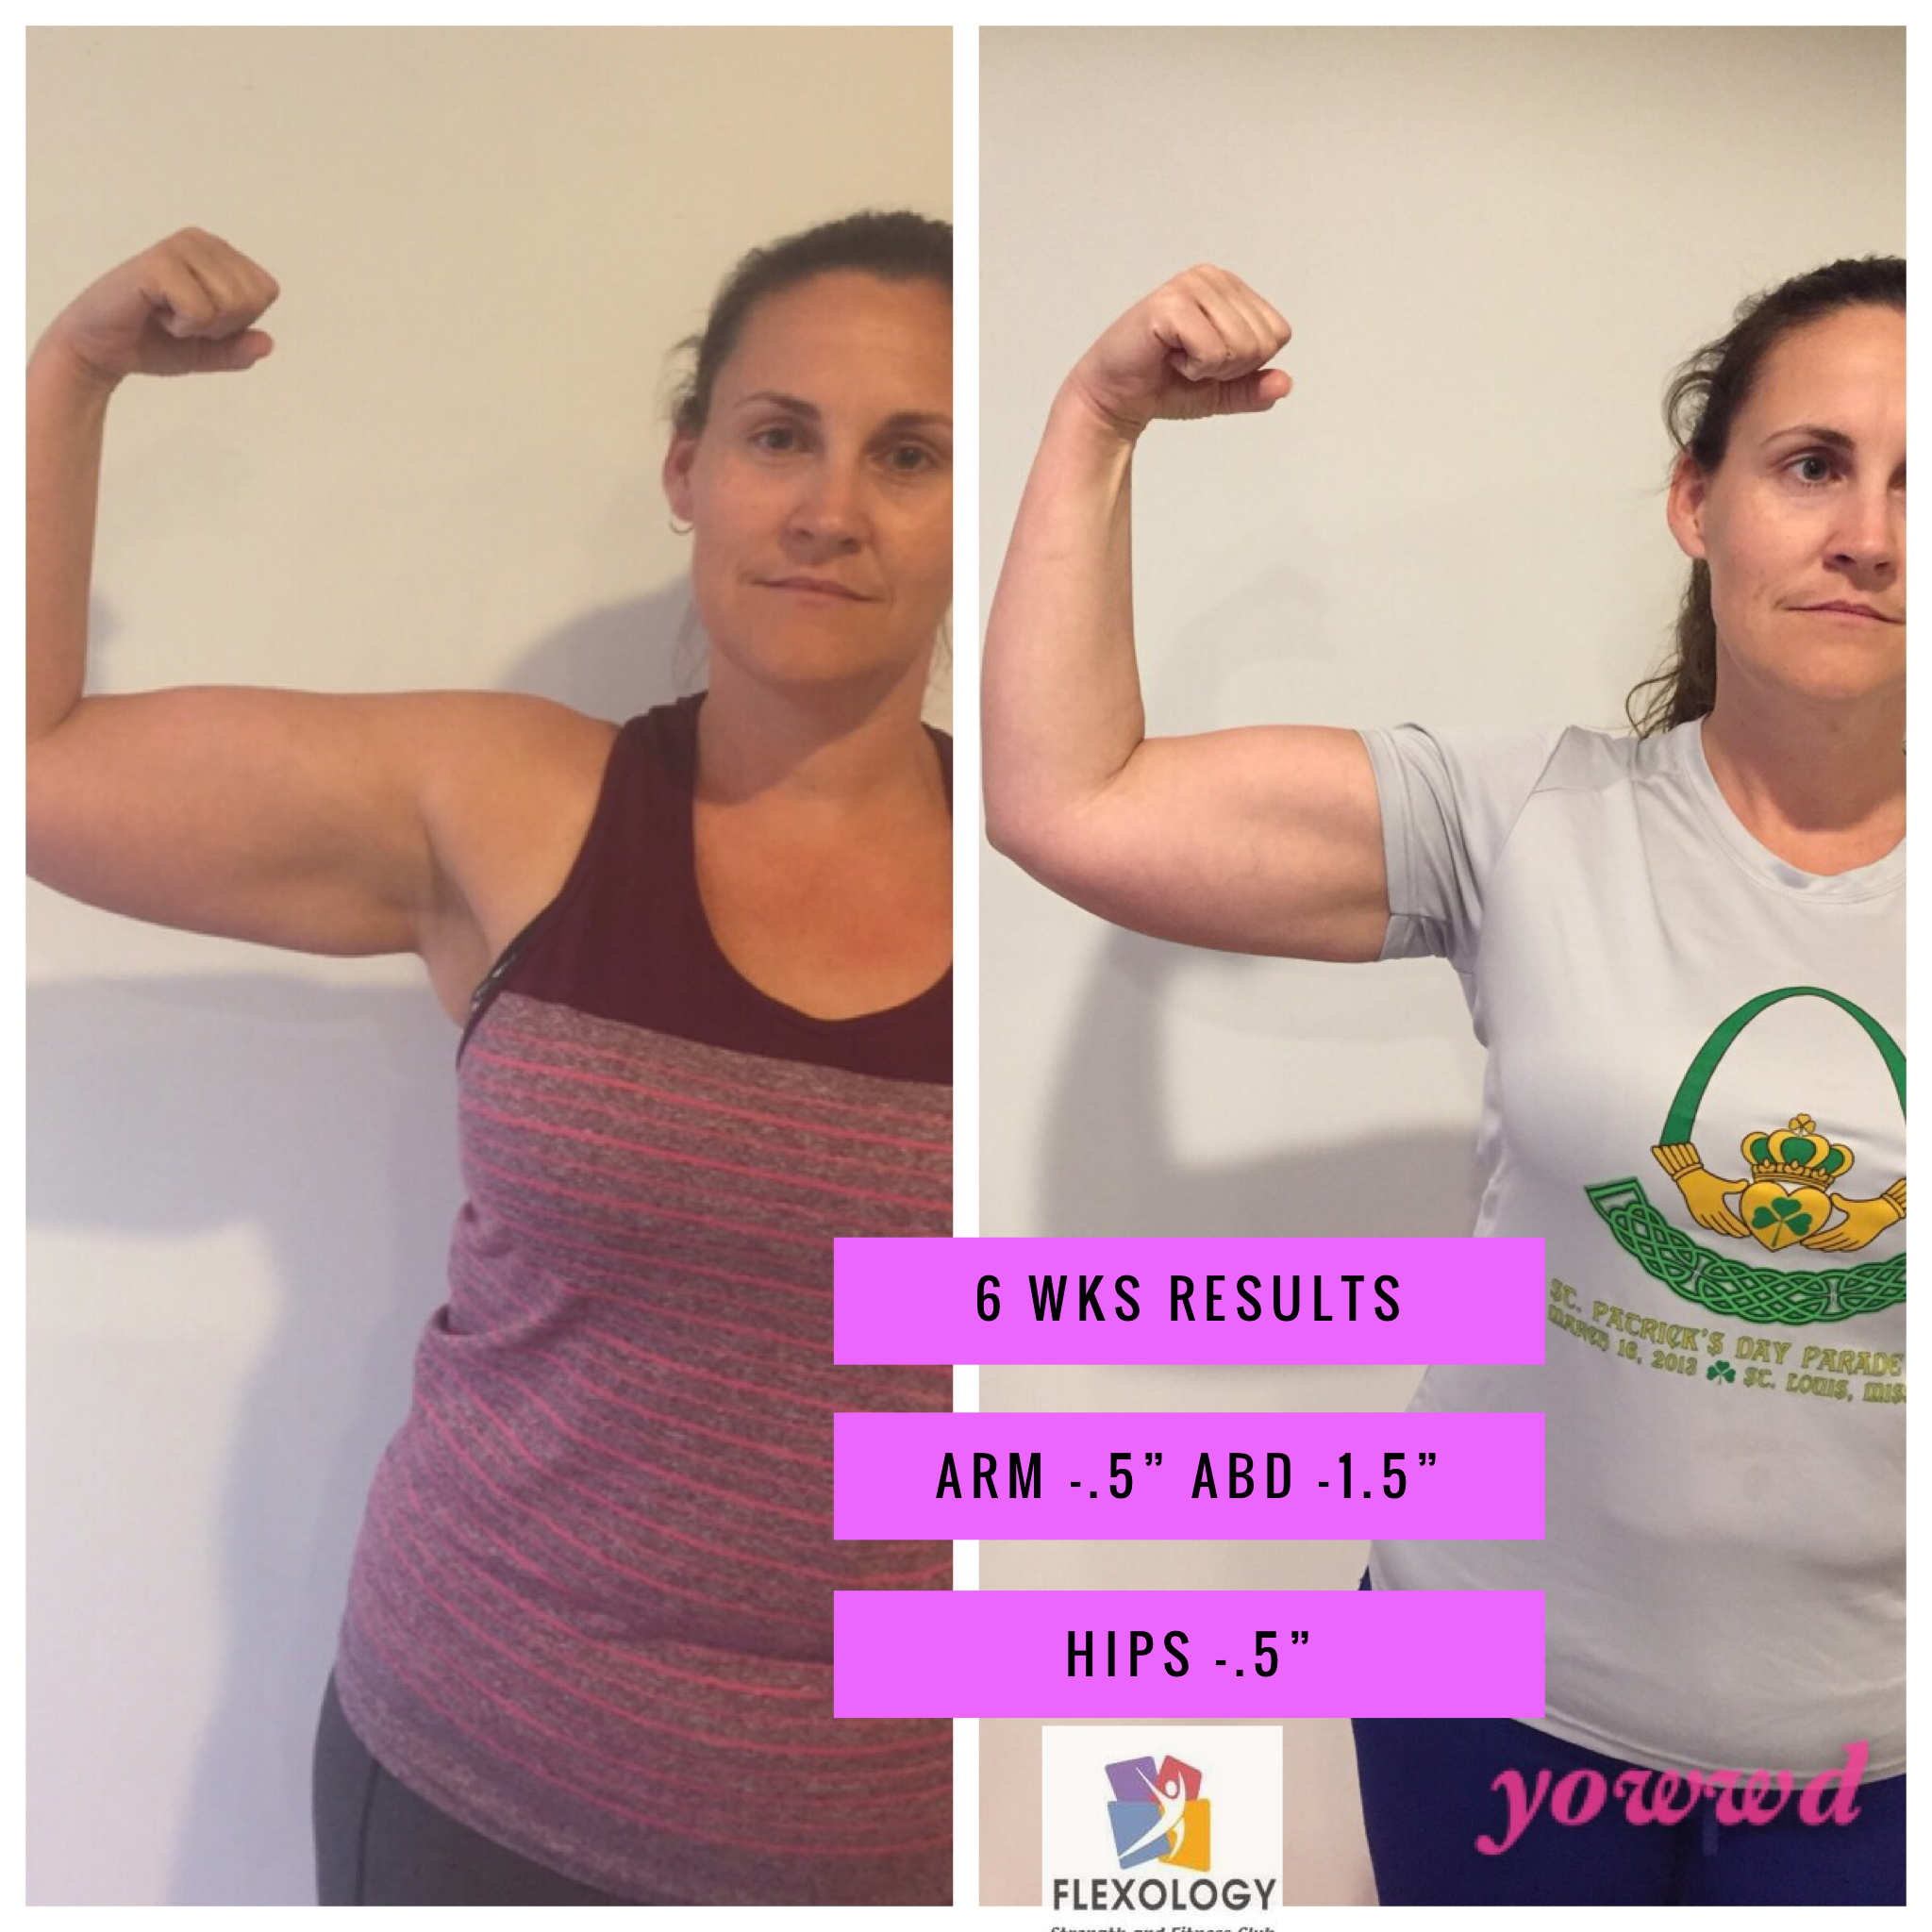 Amber lost 2.5 inches in 6  weeks.